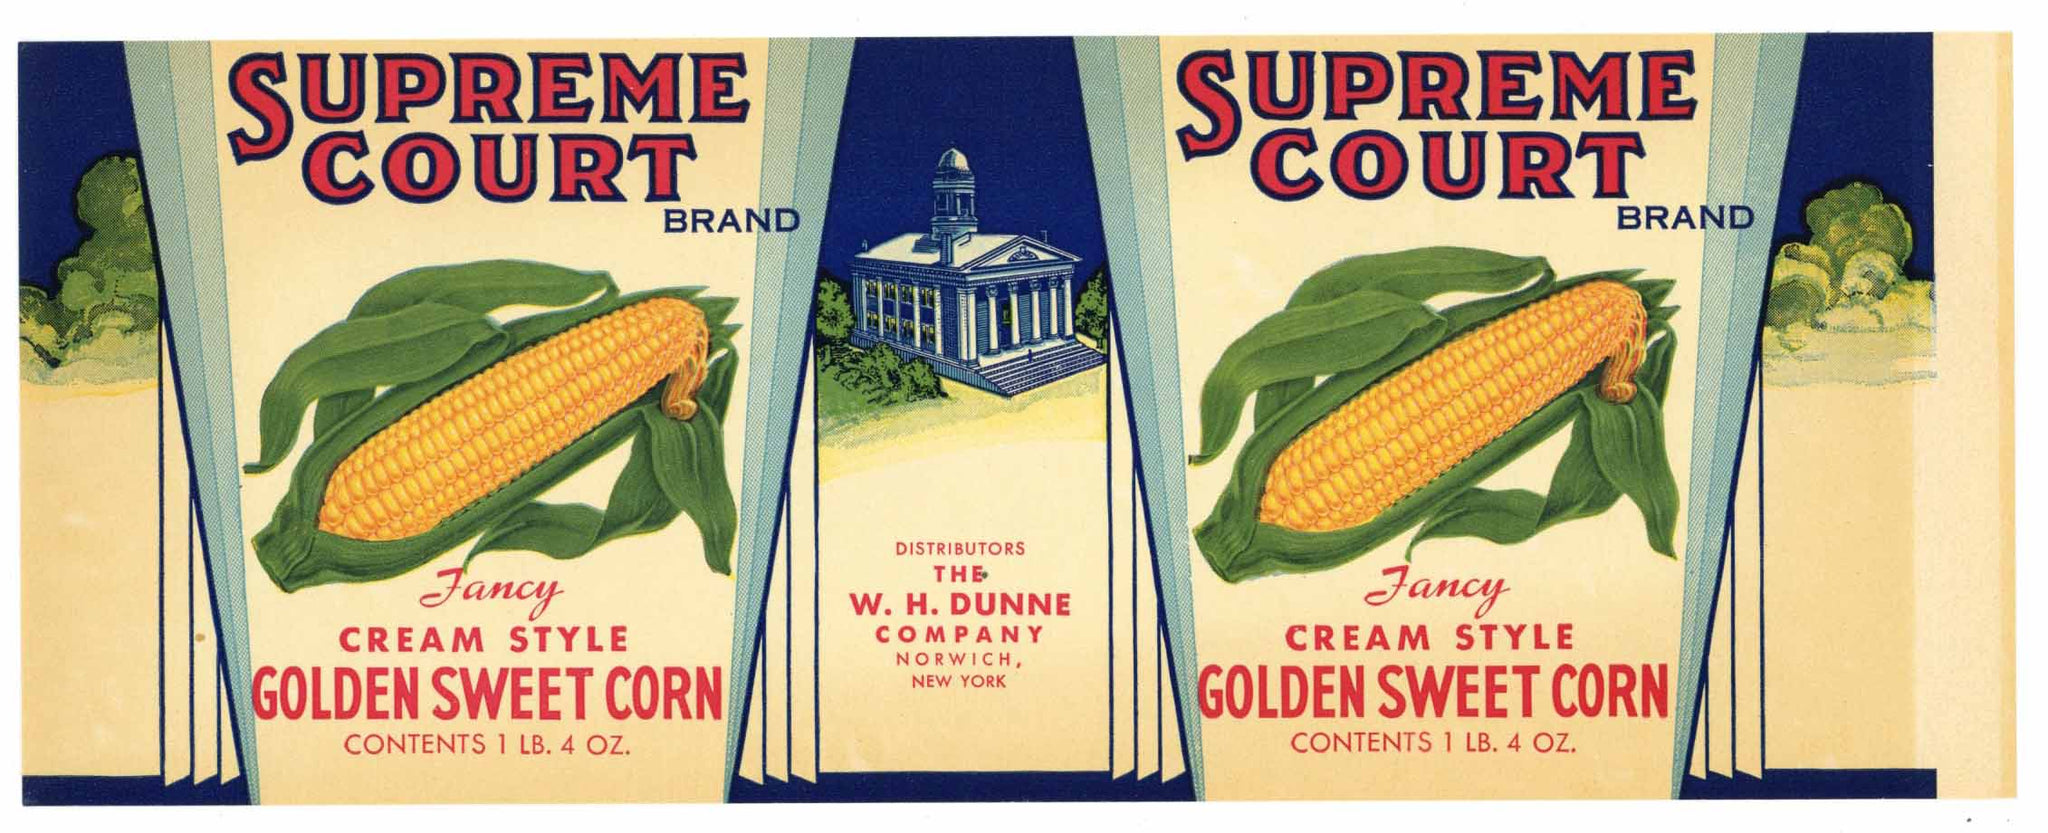 Supreme Court Brand Vintage Norwich New York Corn Can Label